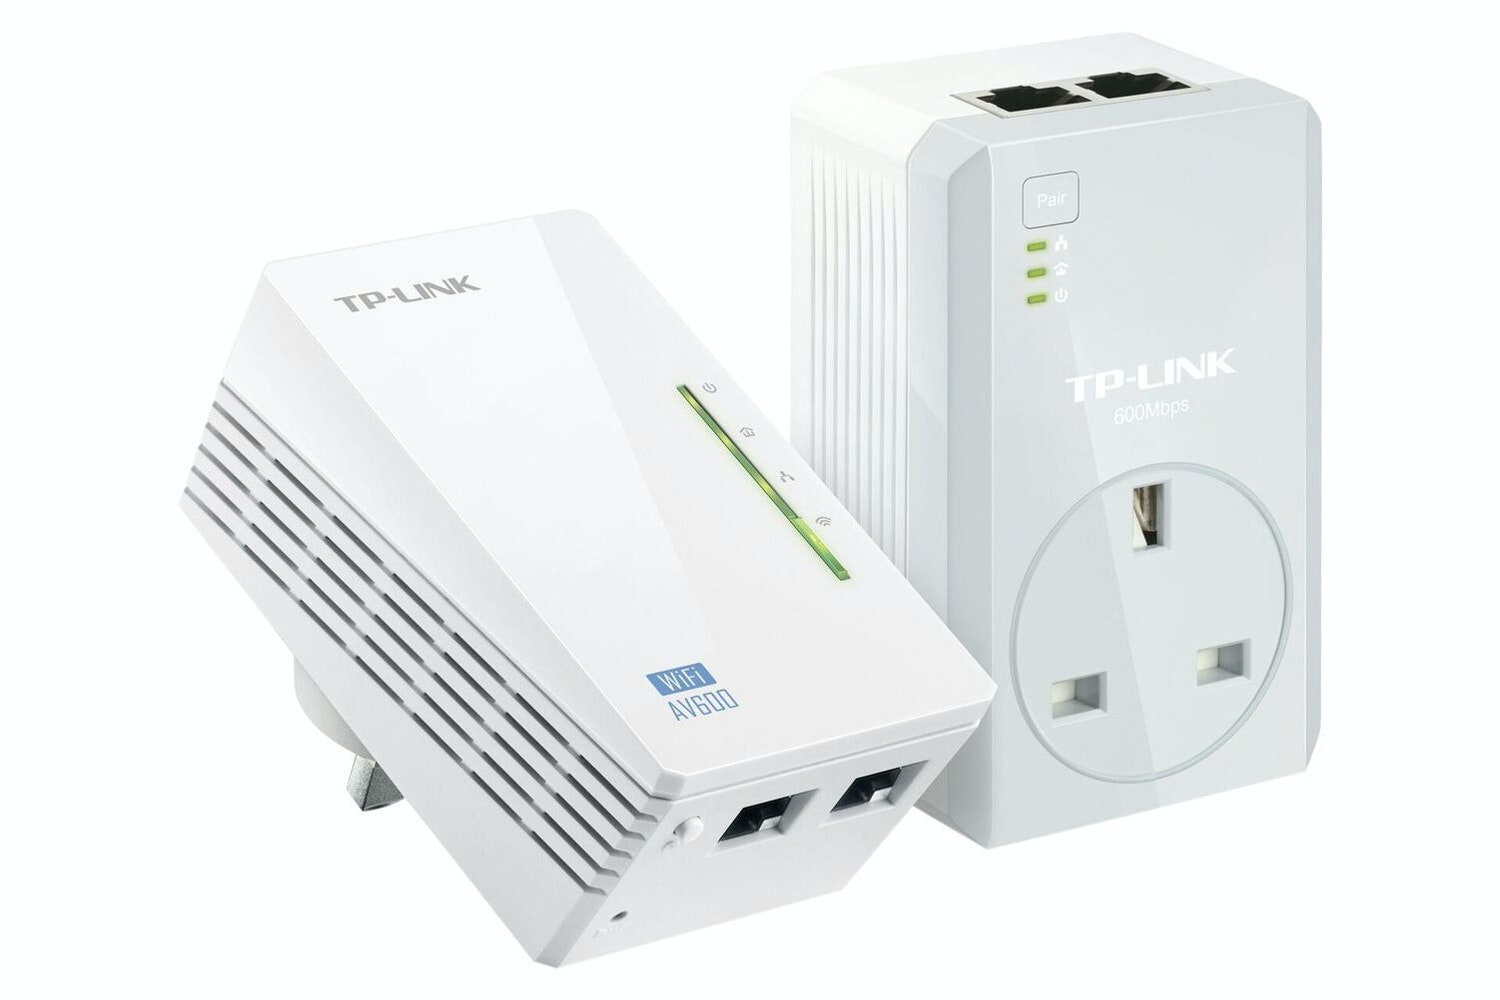 TP-Link AV600 N300 WIFI Powerline Passthrough Kit